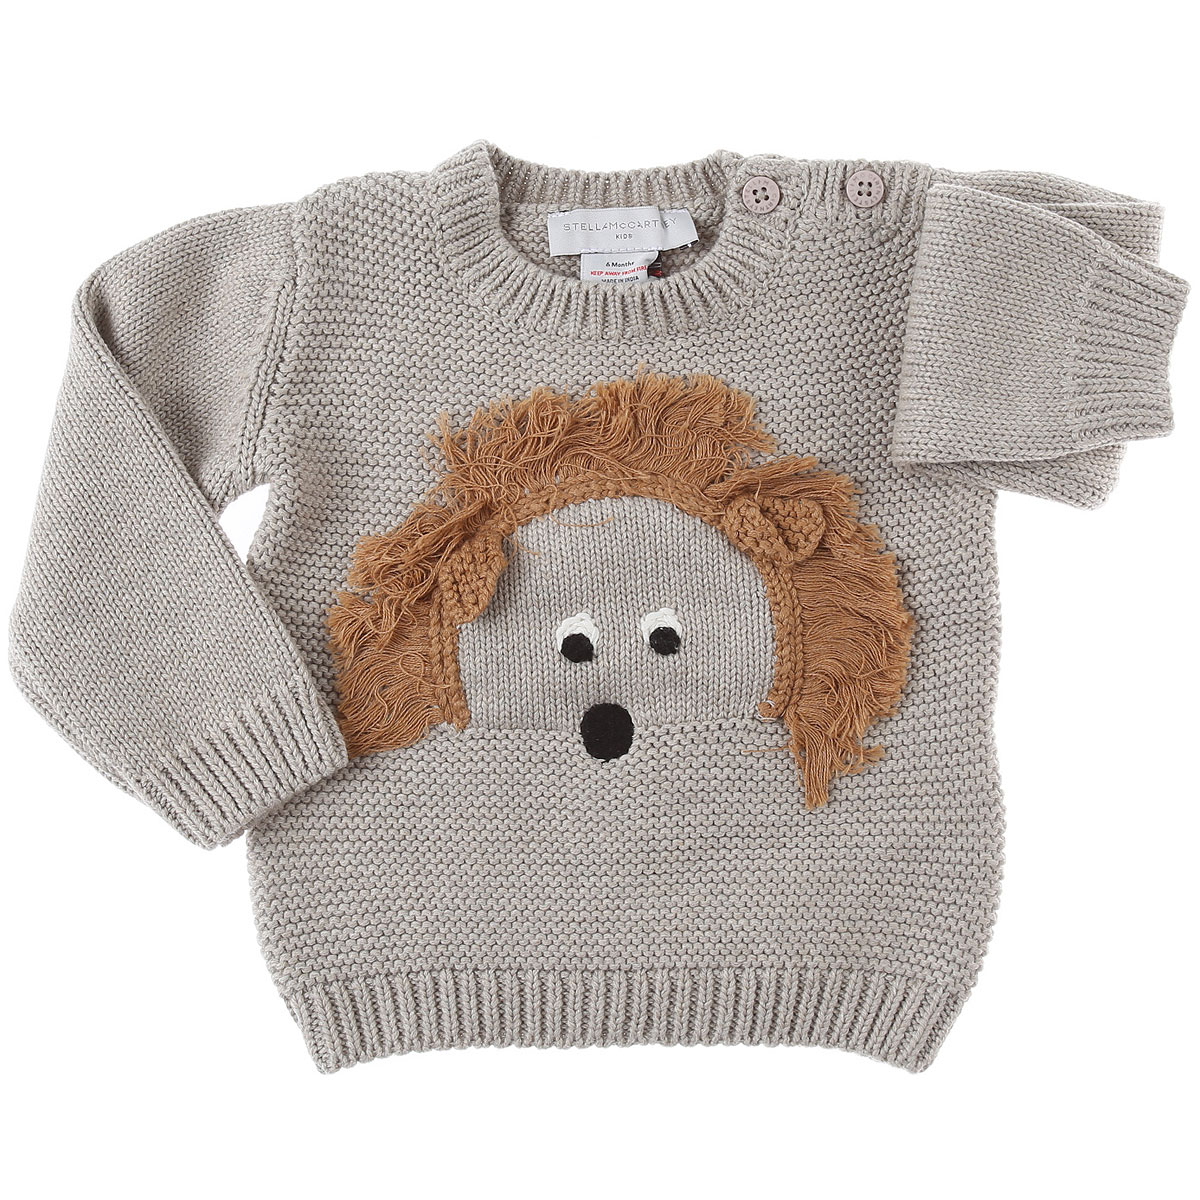 Stella McCartney Baby Sweaters for Boys On Sale, Grey Beige, Cotton, 2019, 12 M 18M 3M 6M